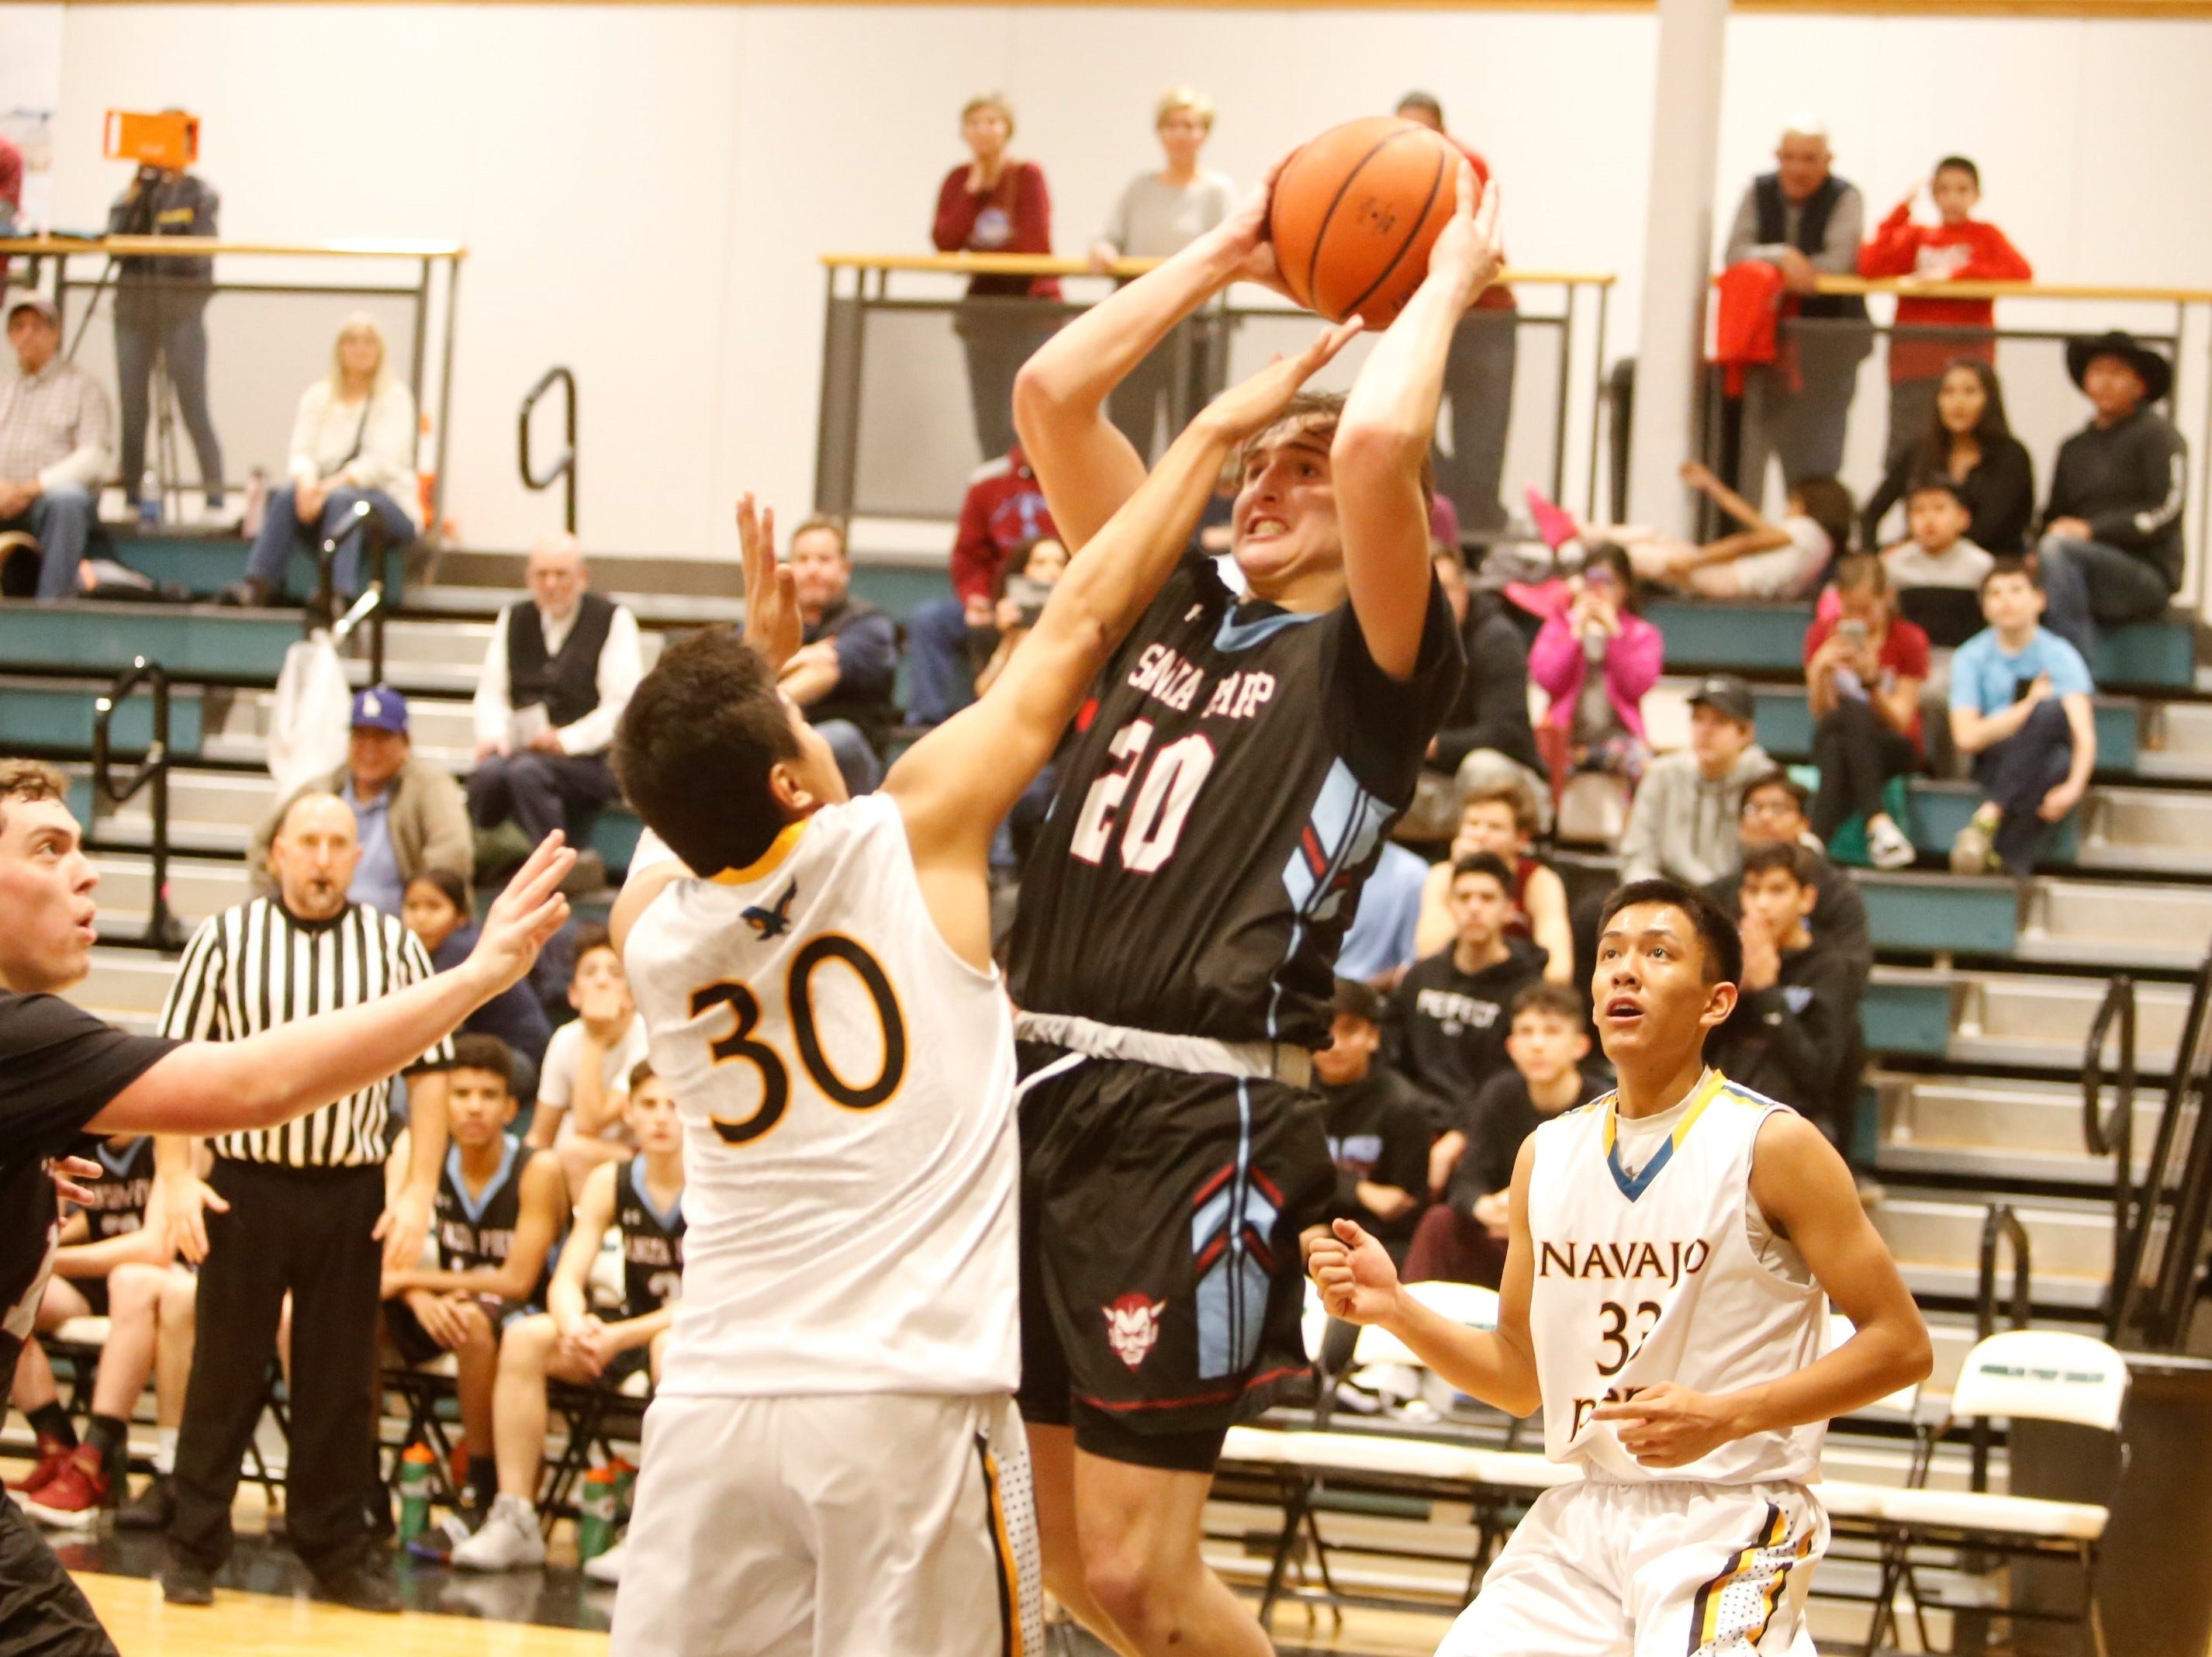 Sandia Prep's Max Feit knocks down a contested shot against Navajo Prep's Kasey James (30) during Friday's game at the Eagles Nest in Farmington.